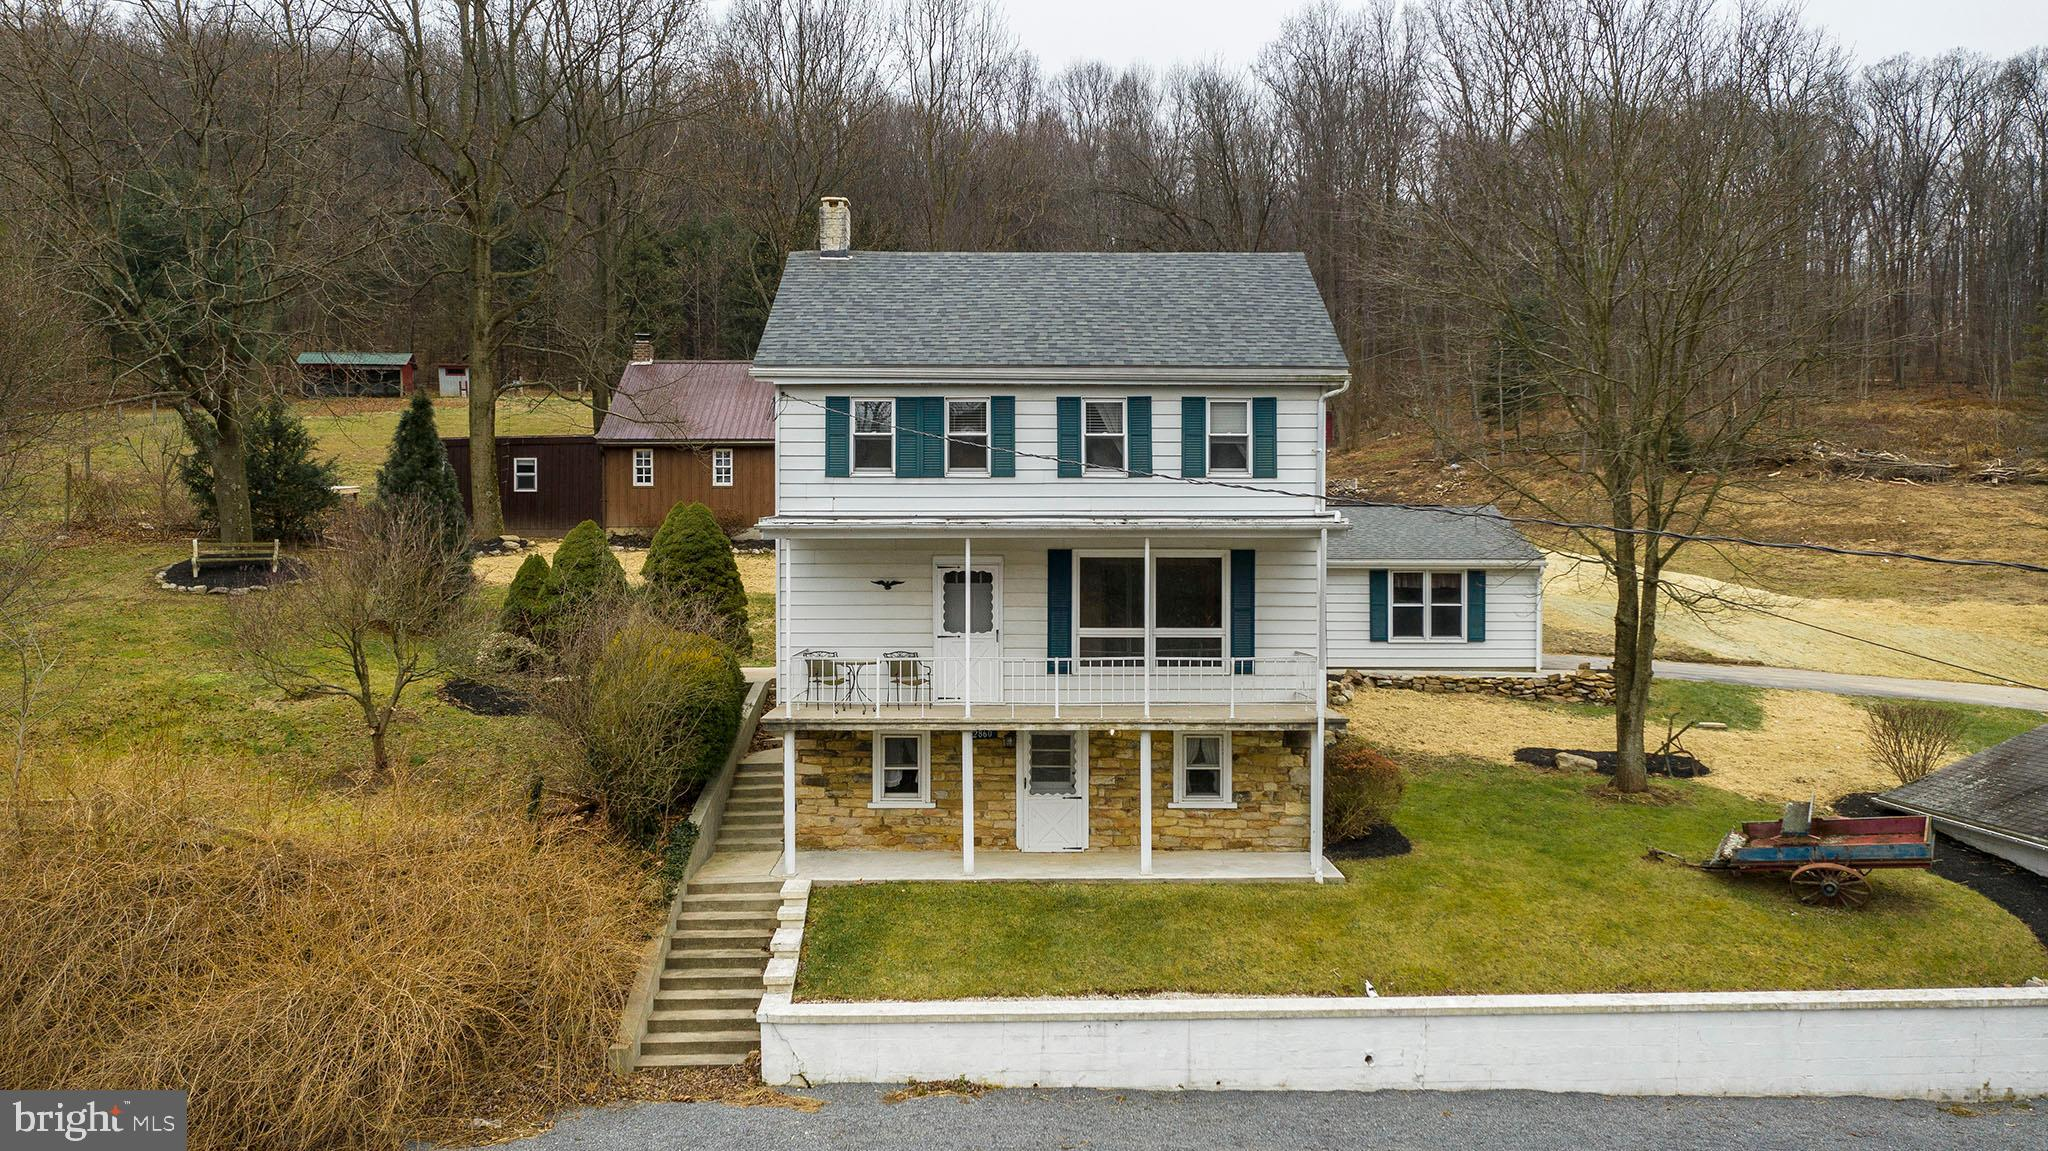 2860 CAMP SWATARA ROAD, BETHEL, PA 19507